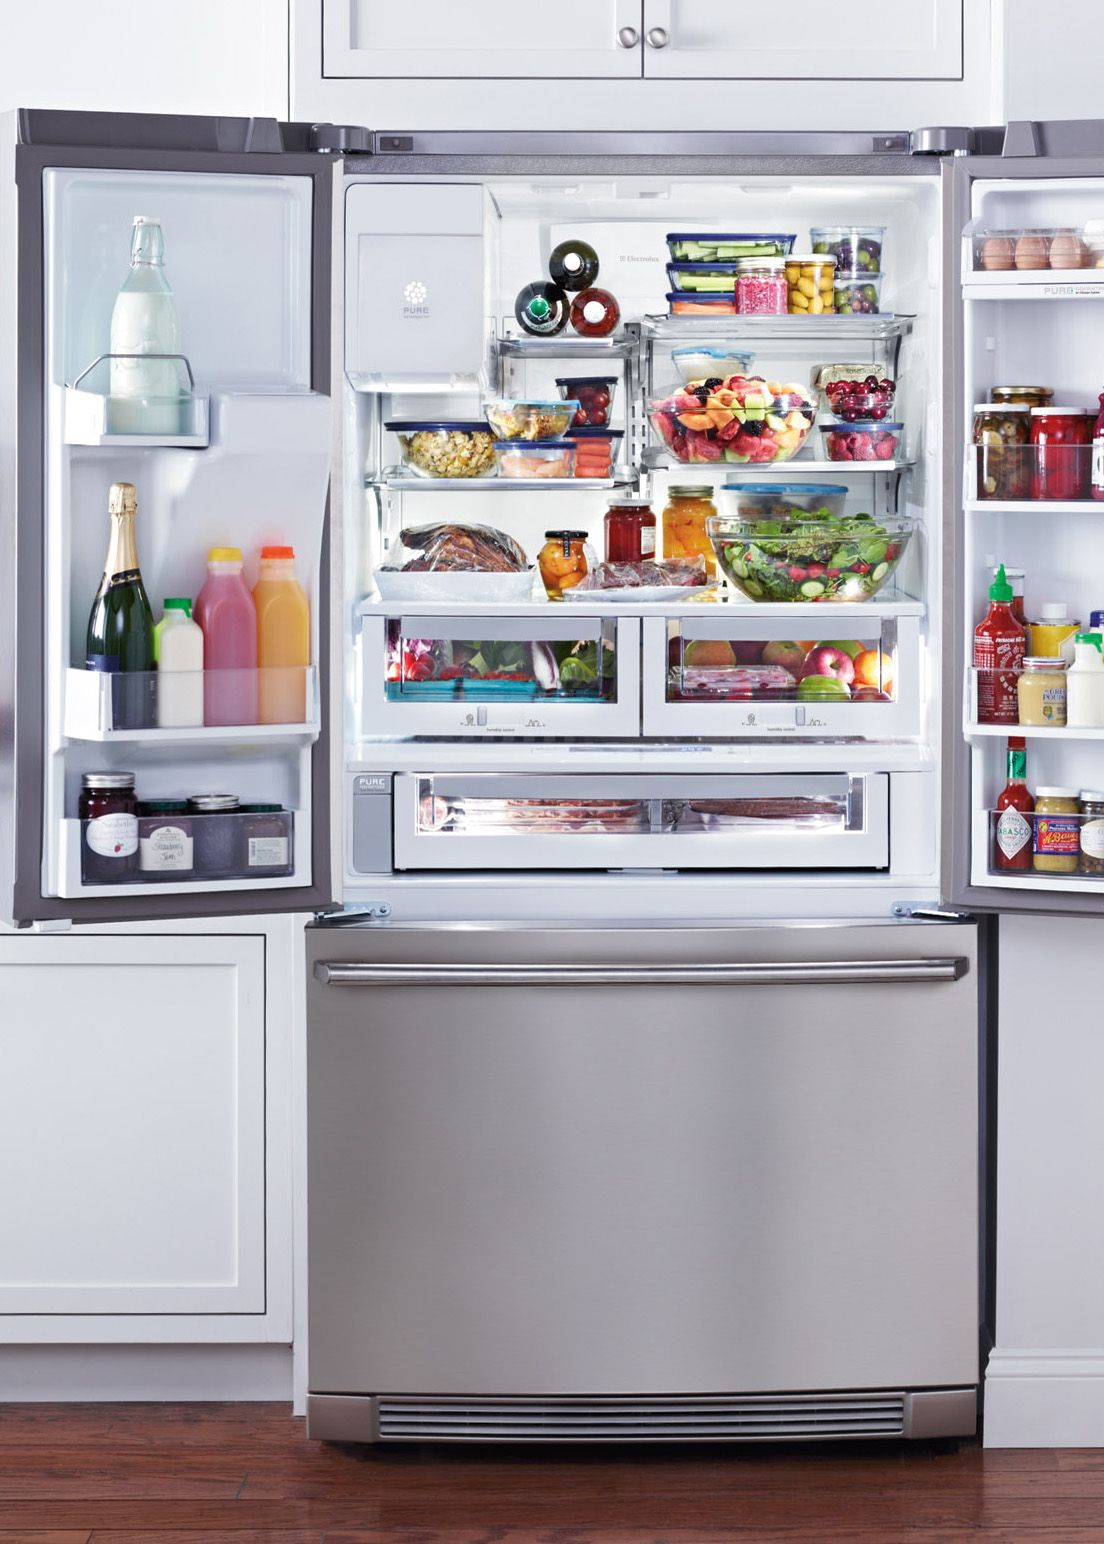 Electrolux WaveTouch cu ft French Door Refrigerator in